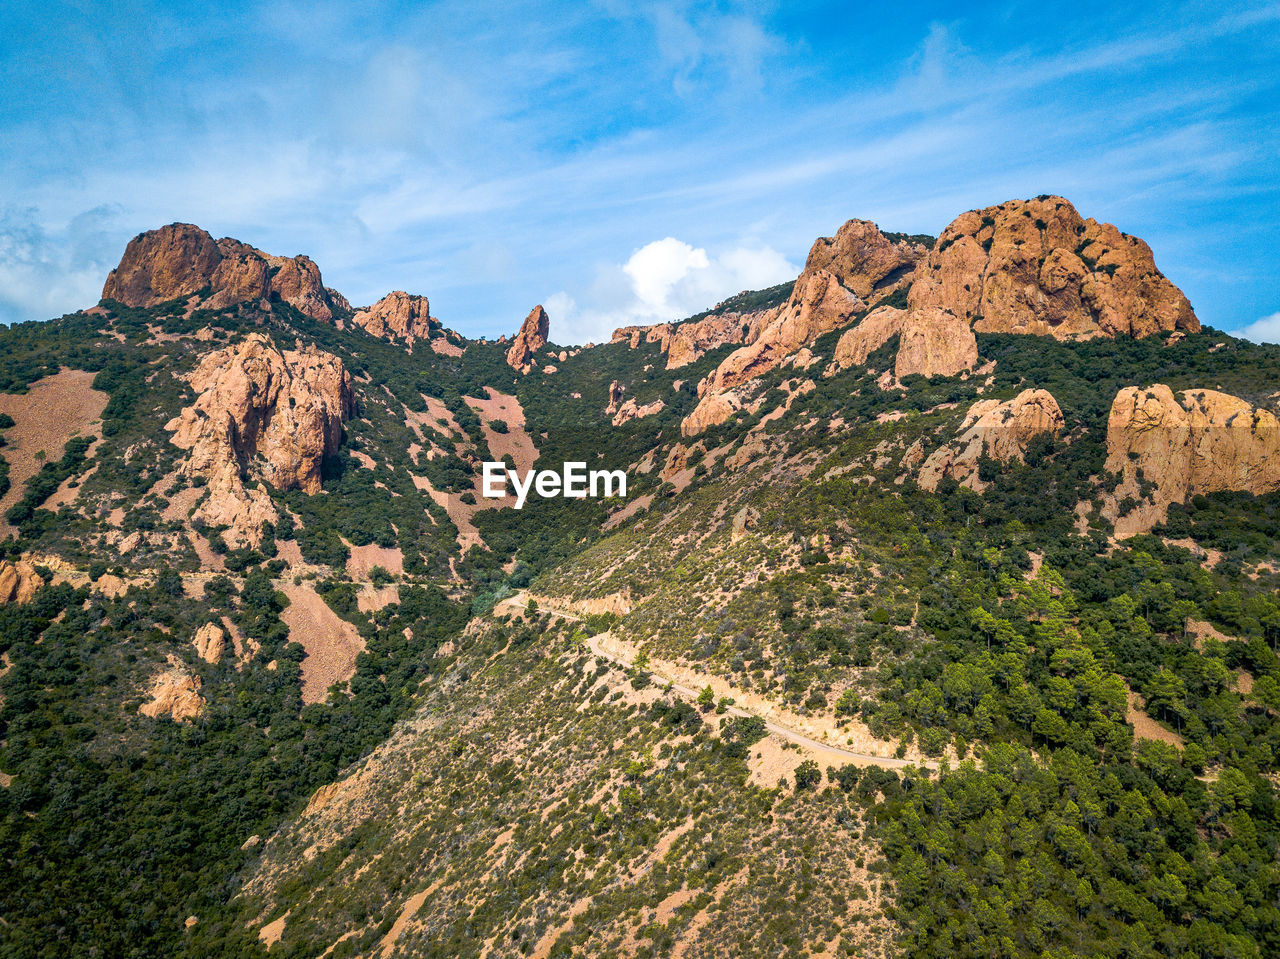 beauty in nature, sky, tranquil scene, mountain, scenics - nature, tranquility, cloud - sky, environment, nature, non-urban scene, rock, landscape, day, no people, mountain range, idyllic, rock formation, land, rock - object, physical geography, outdoors, formation, mountain peak, eroded, arid climate